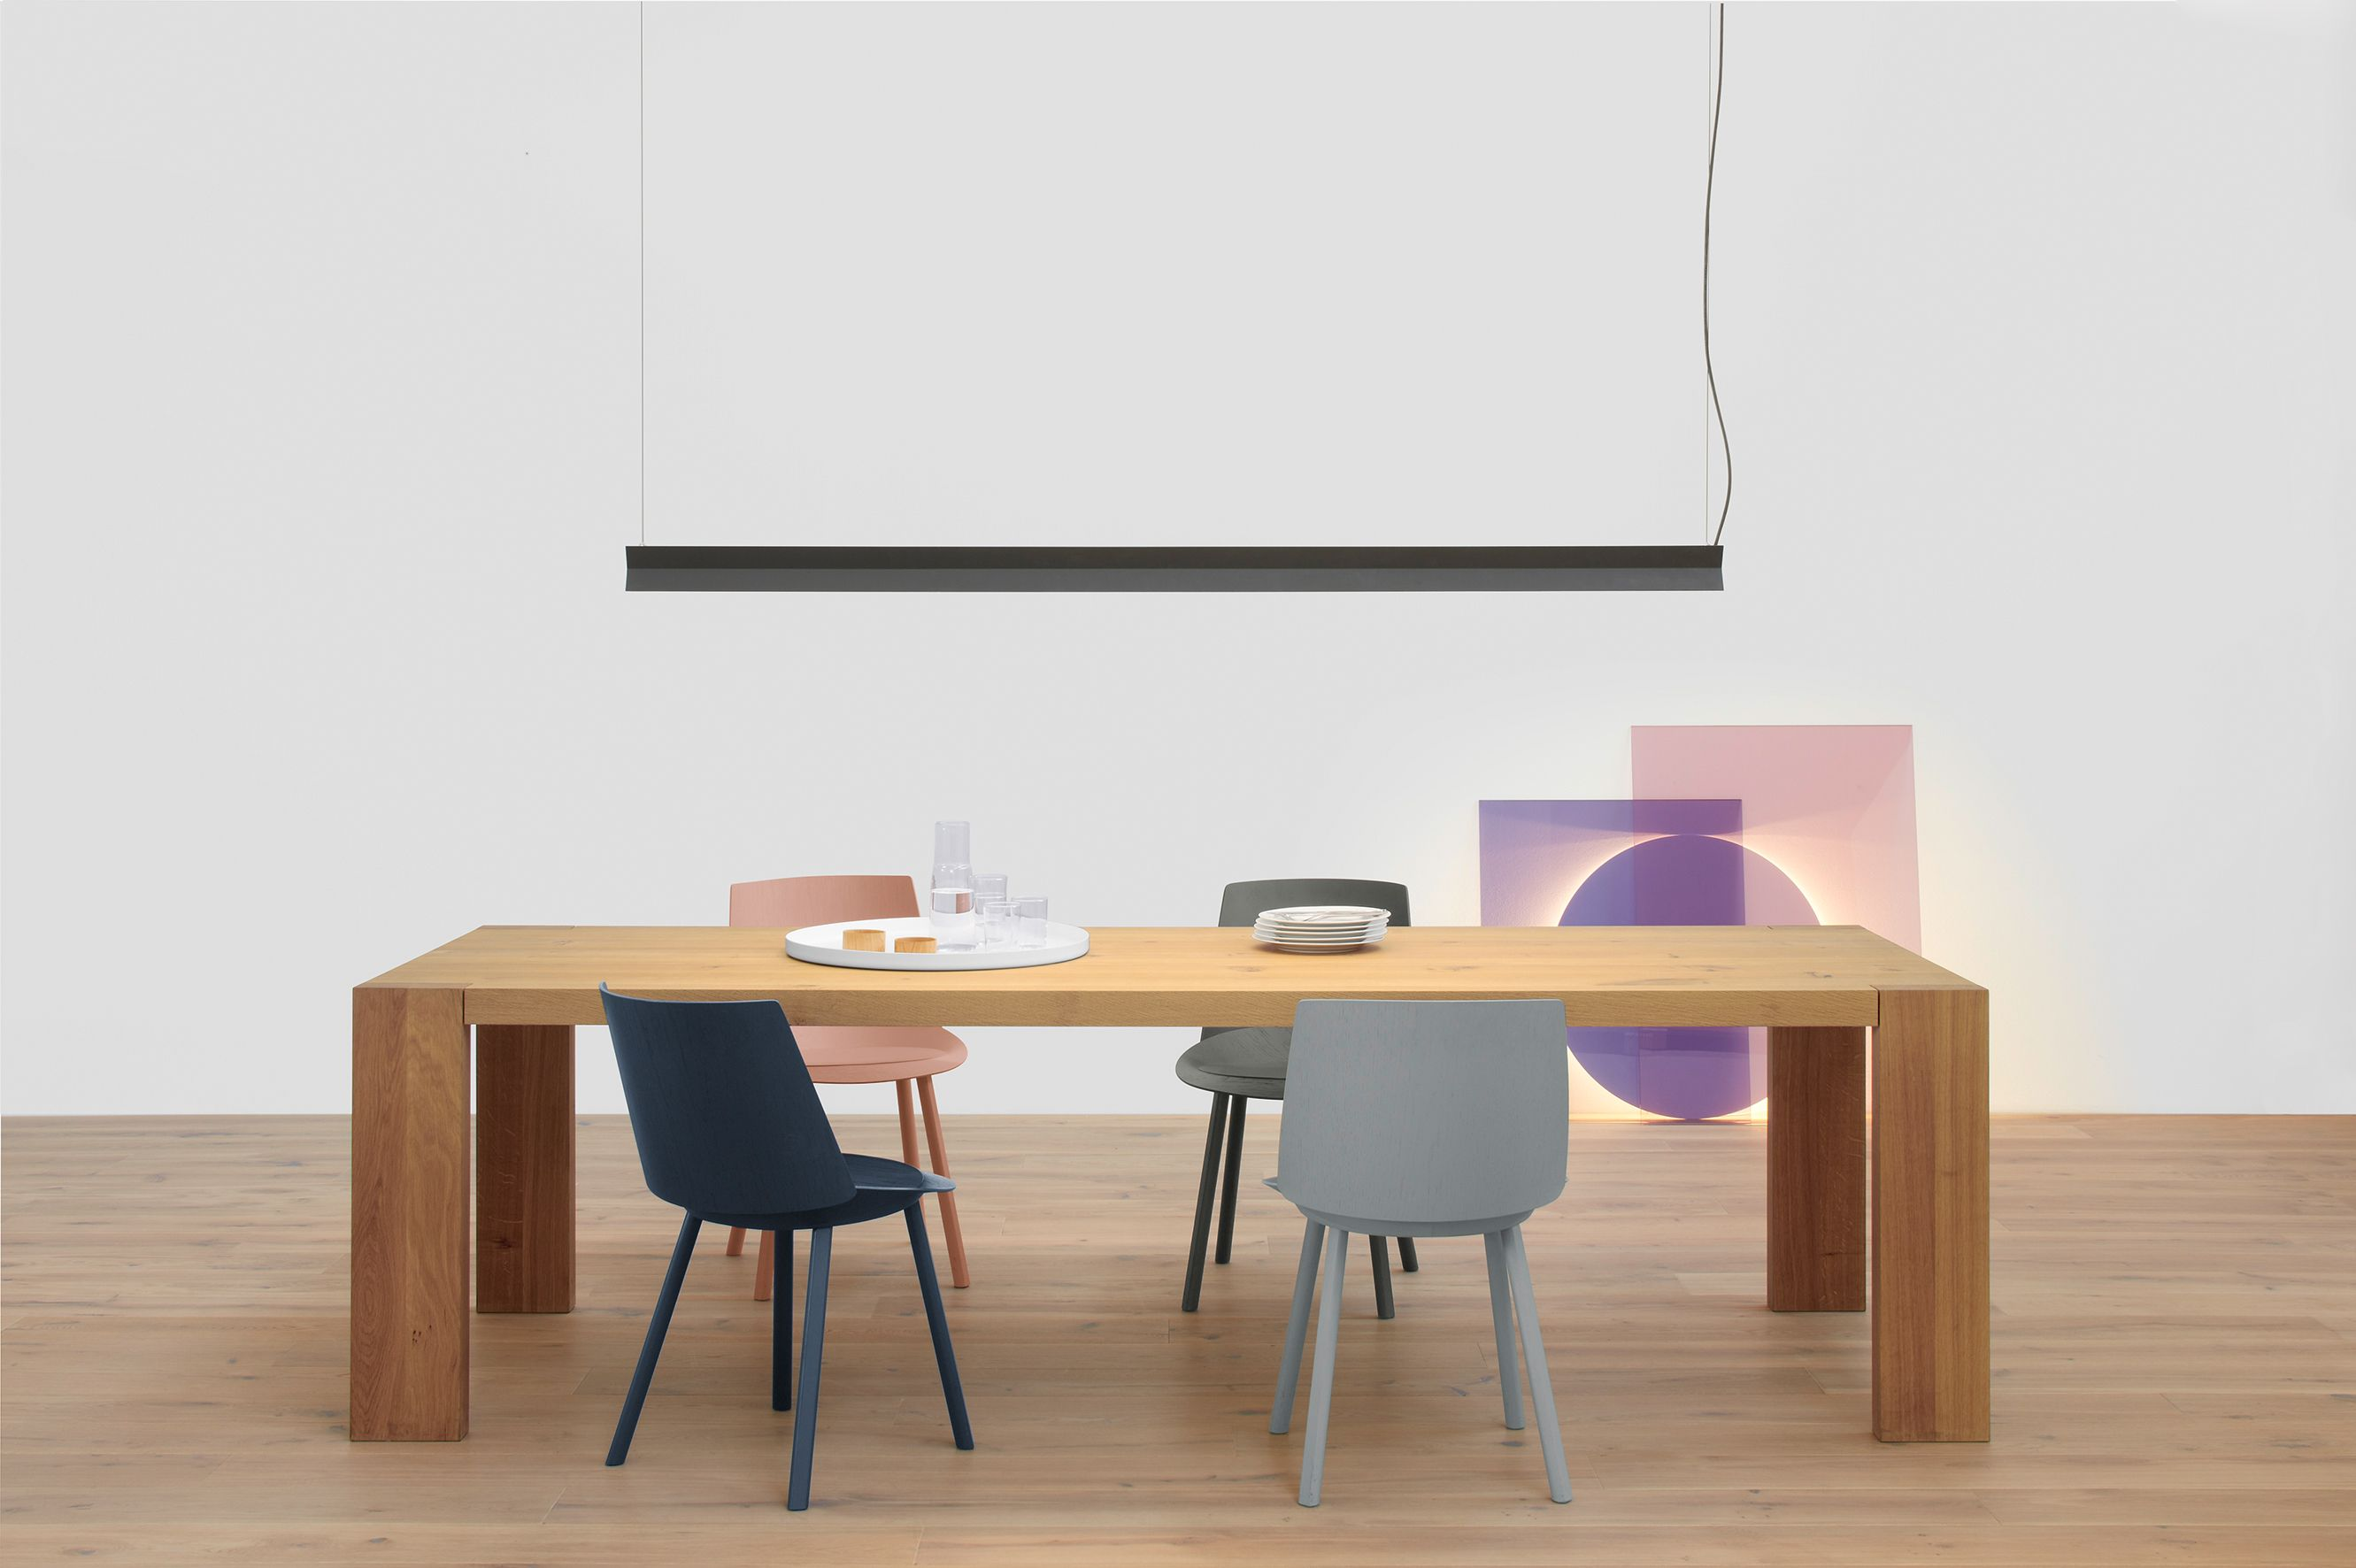 Solid wood table london by philipp mainzer featuring rectangular